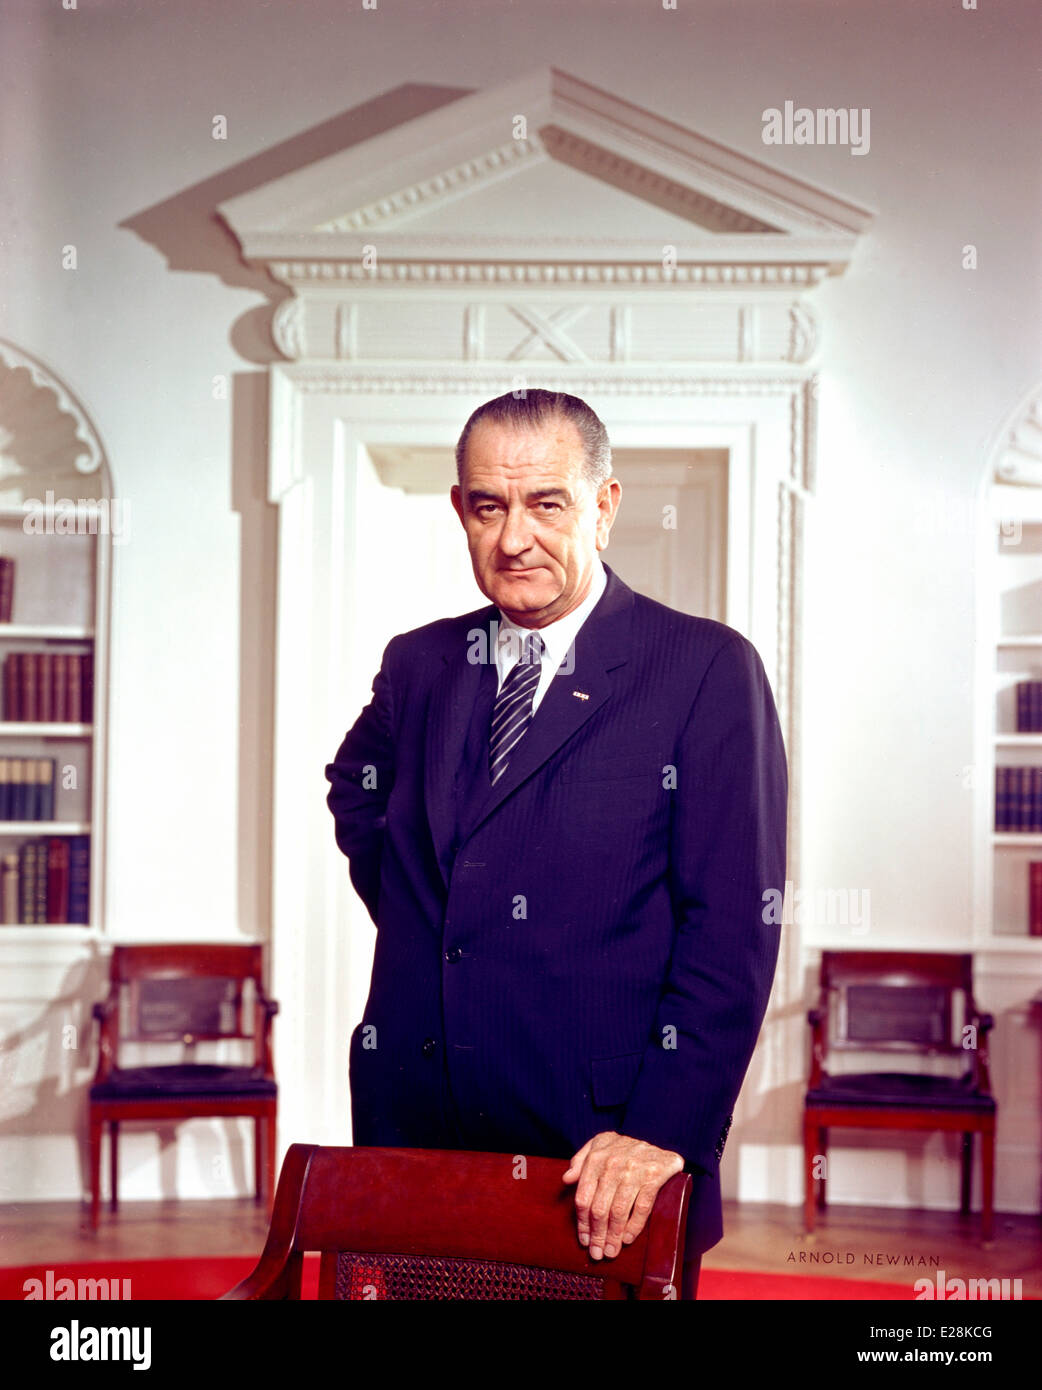 Lyndon B. Johnson, 36th President of the United States - Stock Image